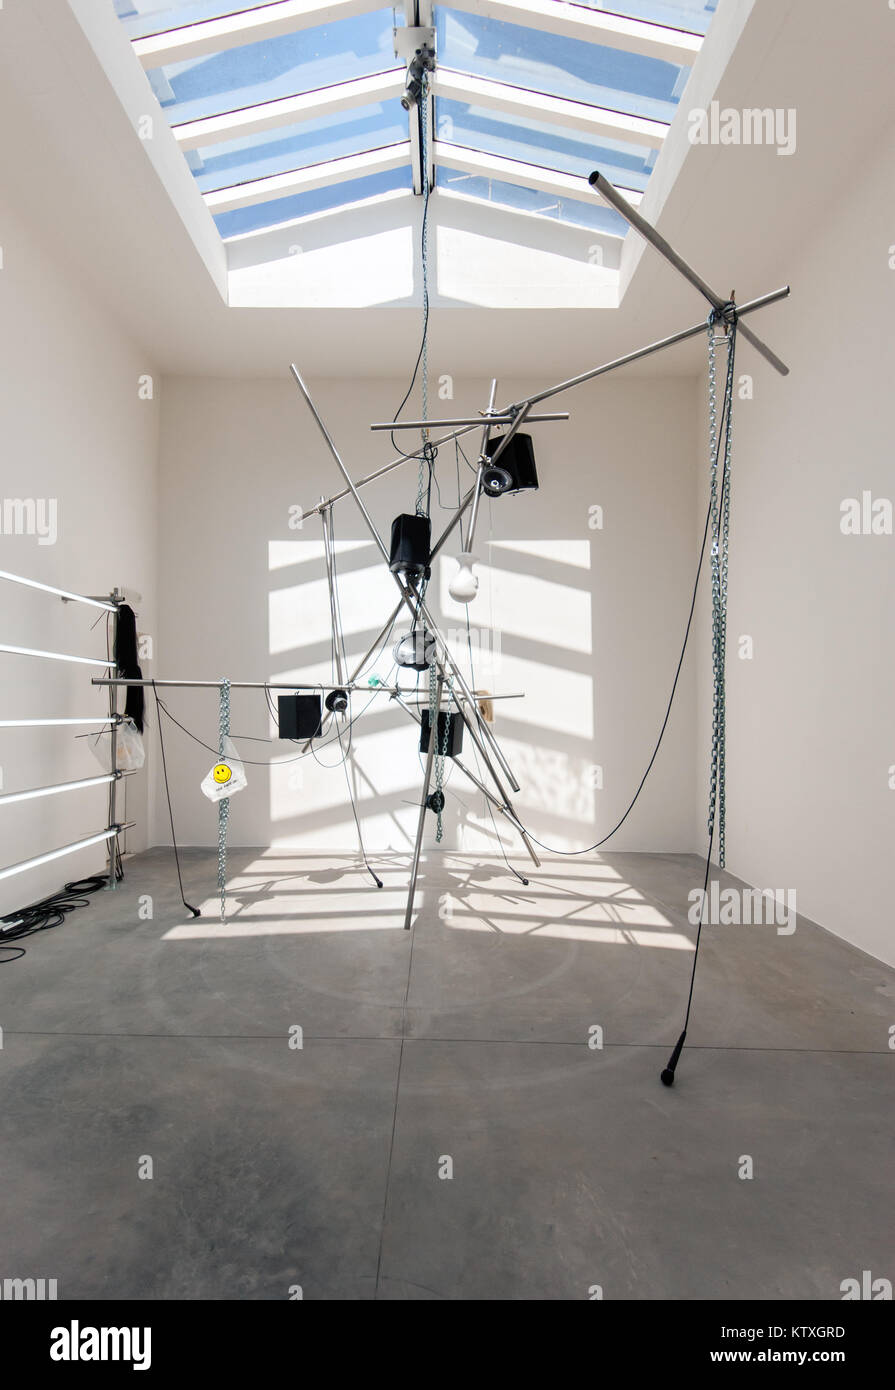 Kinetic Art Exhibition Stock Photos   Kinetic Art Exhibition Stock ... 5d1be51cb8f